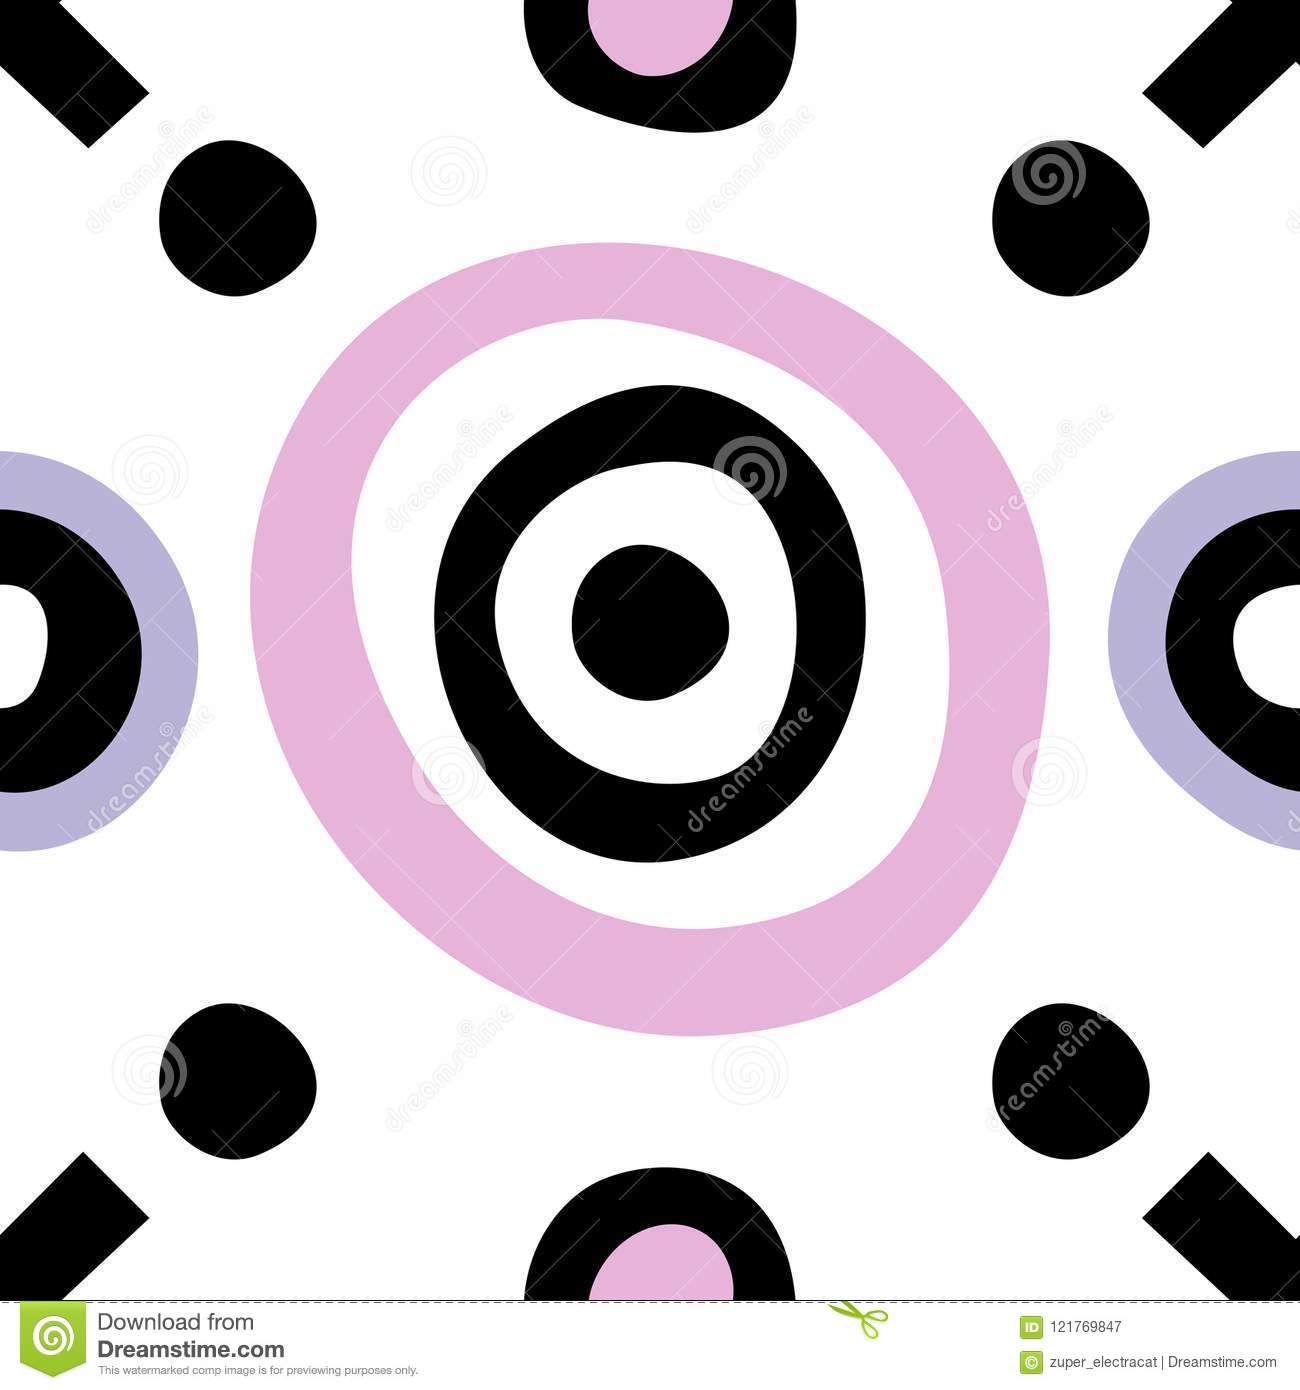 Simple Geometric Shapes For Children Stock Photo